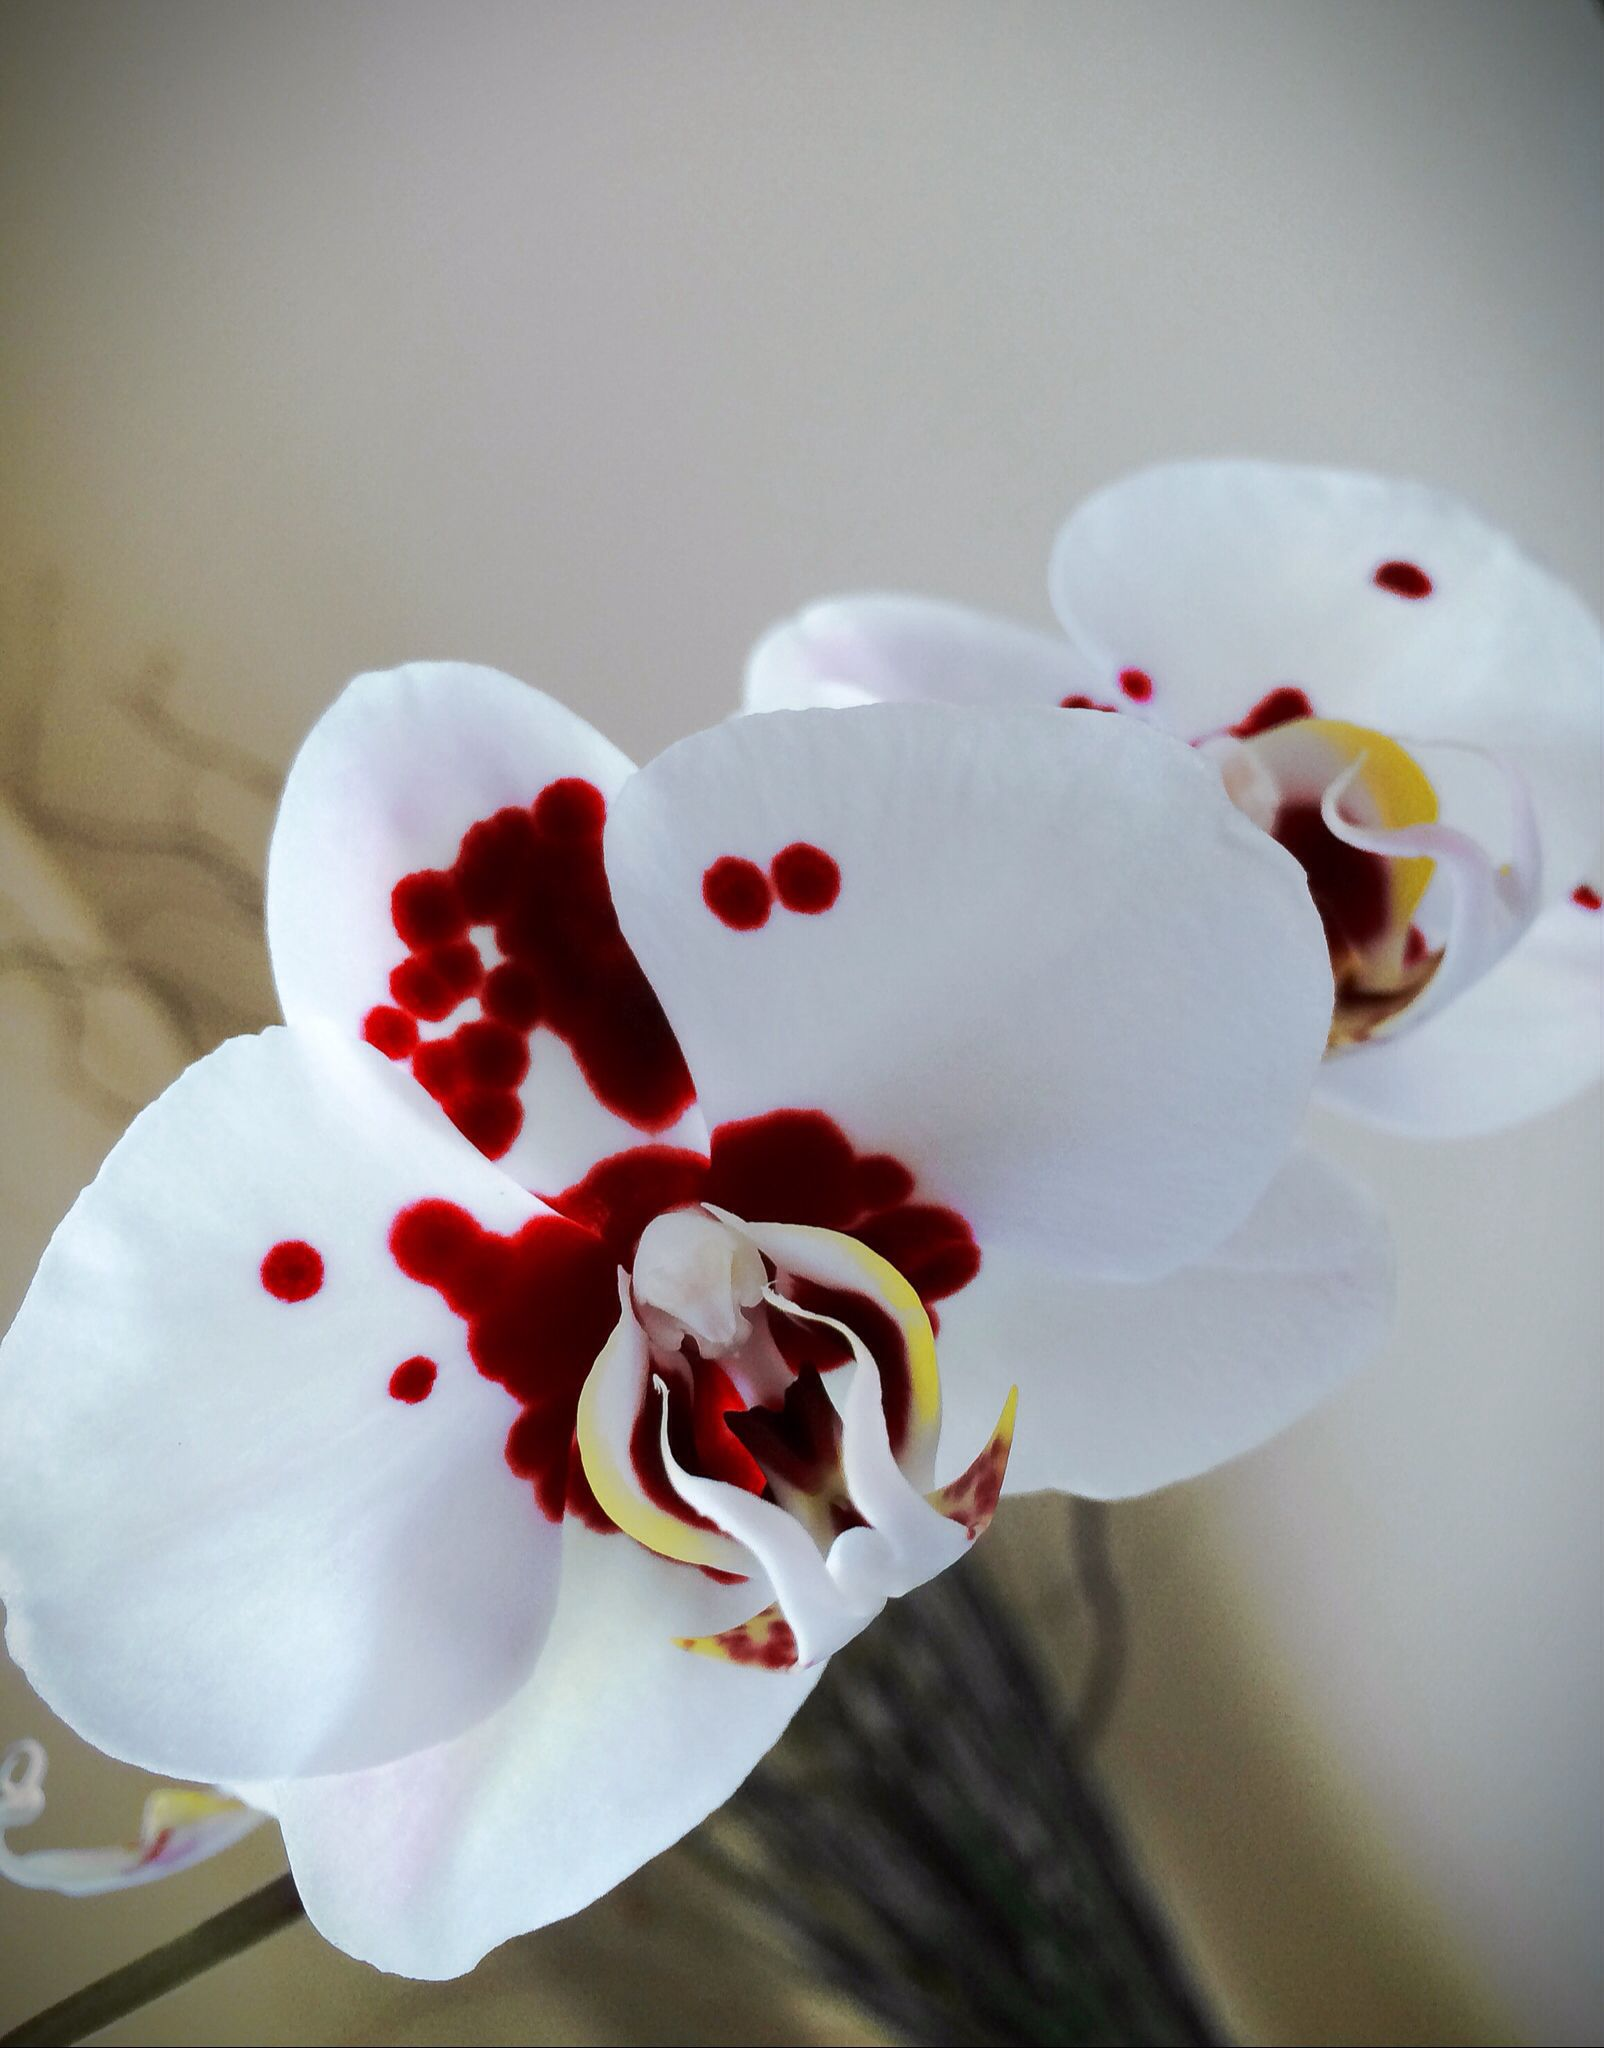 I Want This Dexter Orchid My Dexter Orchid Spotted Phalaenopsis Love Orchid Flower Orchids Flowers